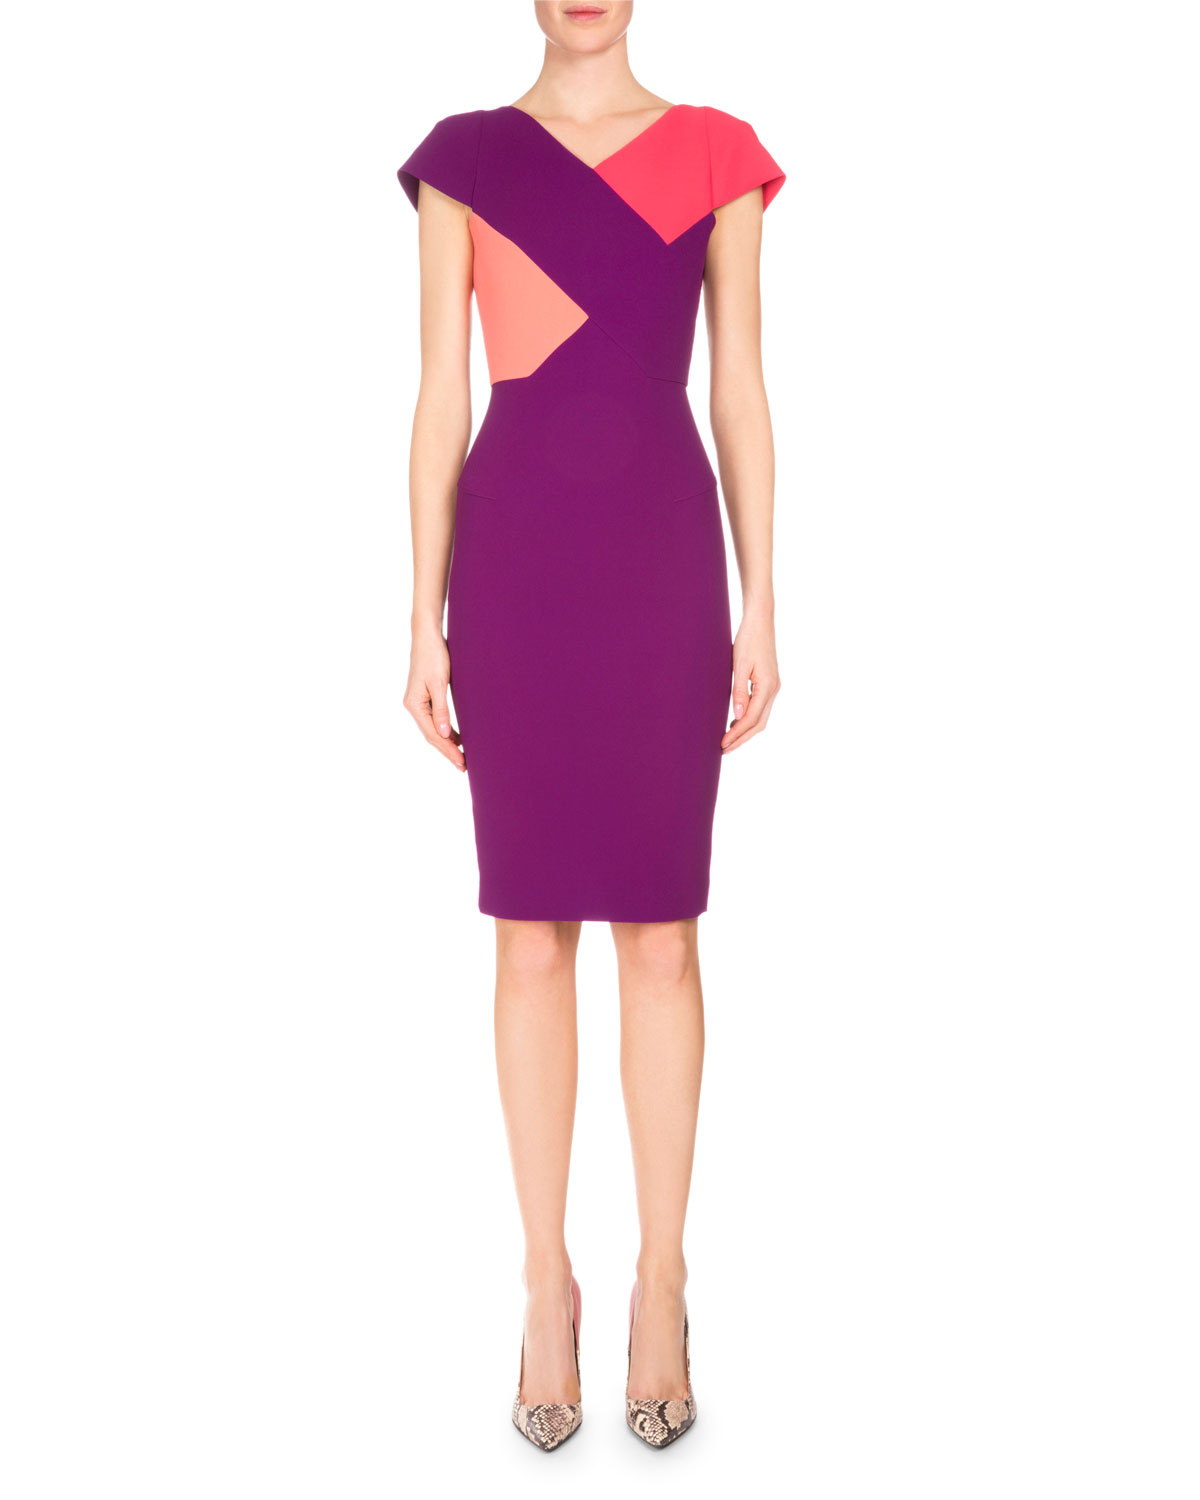 Tournay Colorblock Sheath Dress, Grape/Watermelon